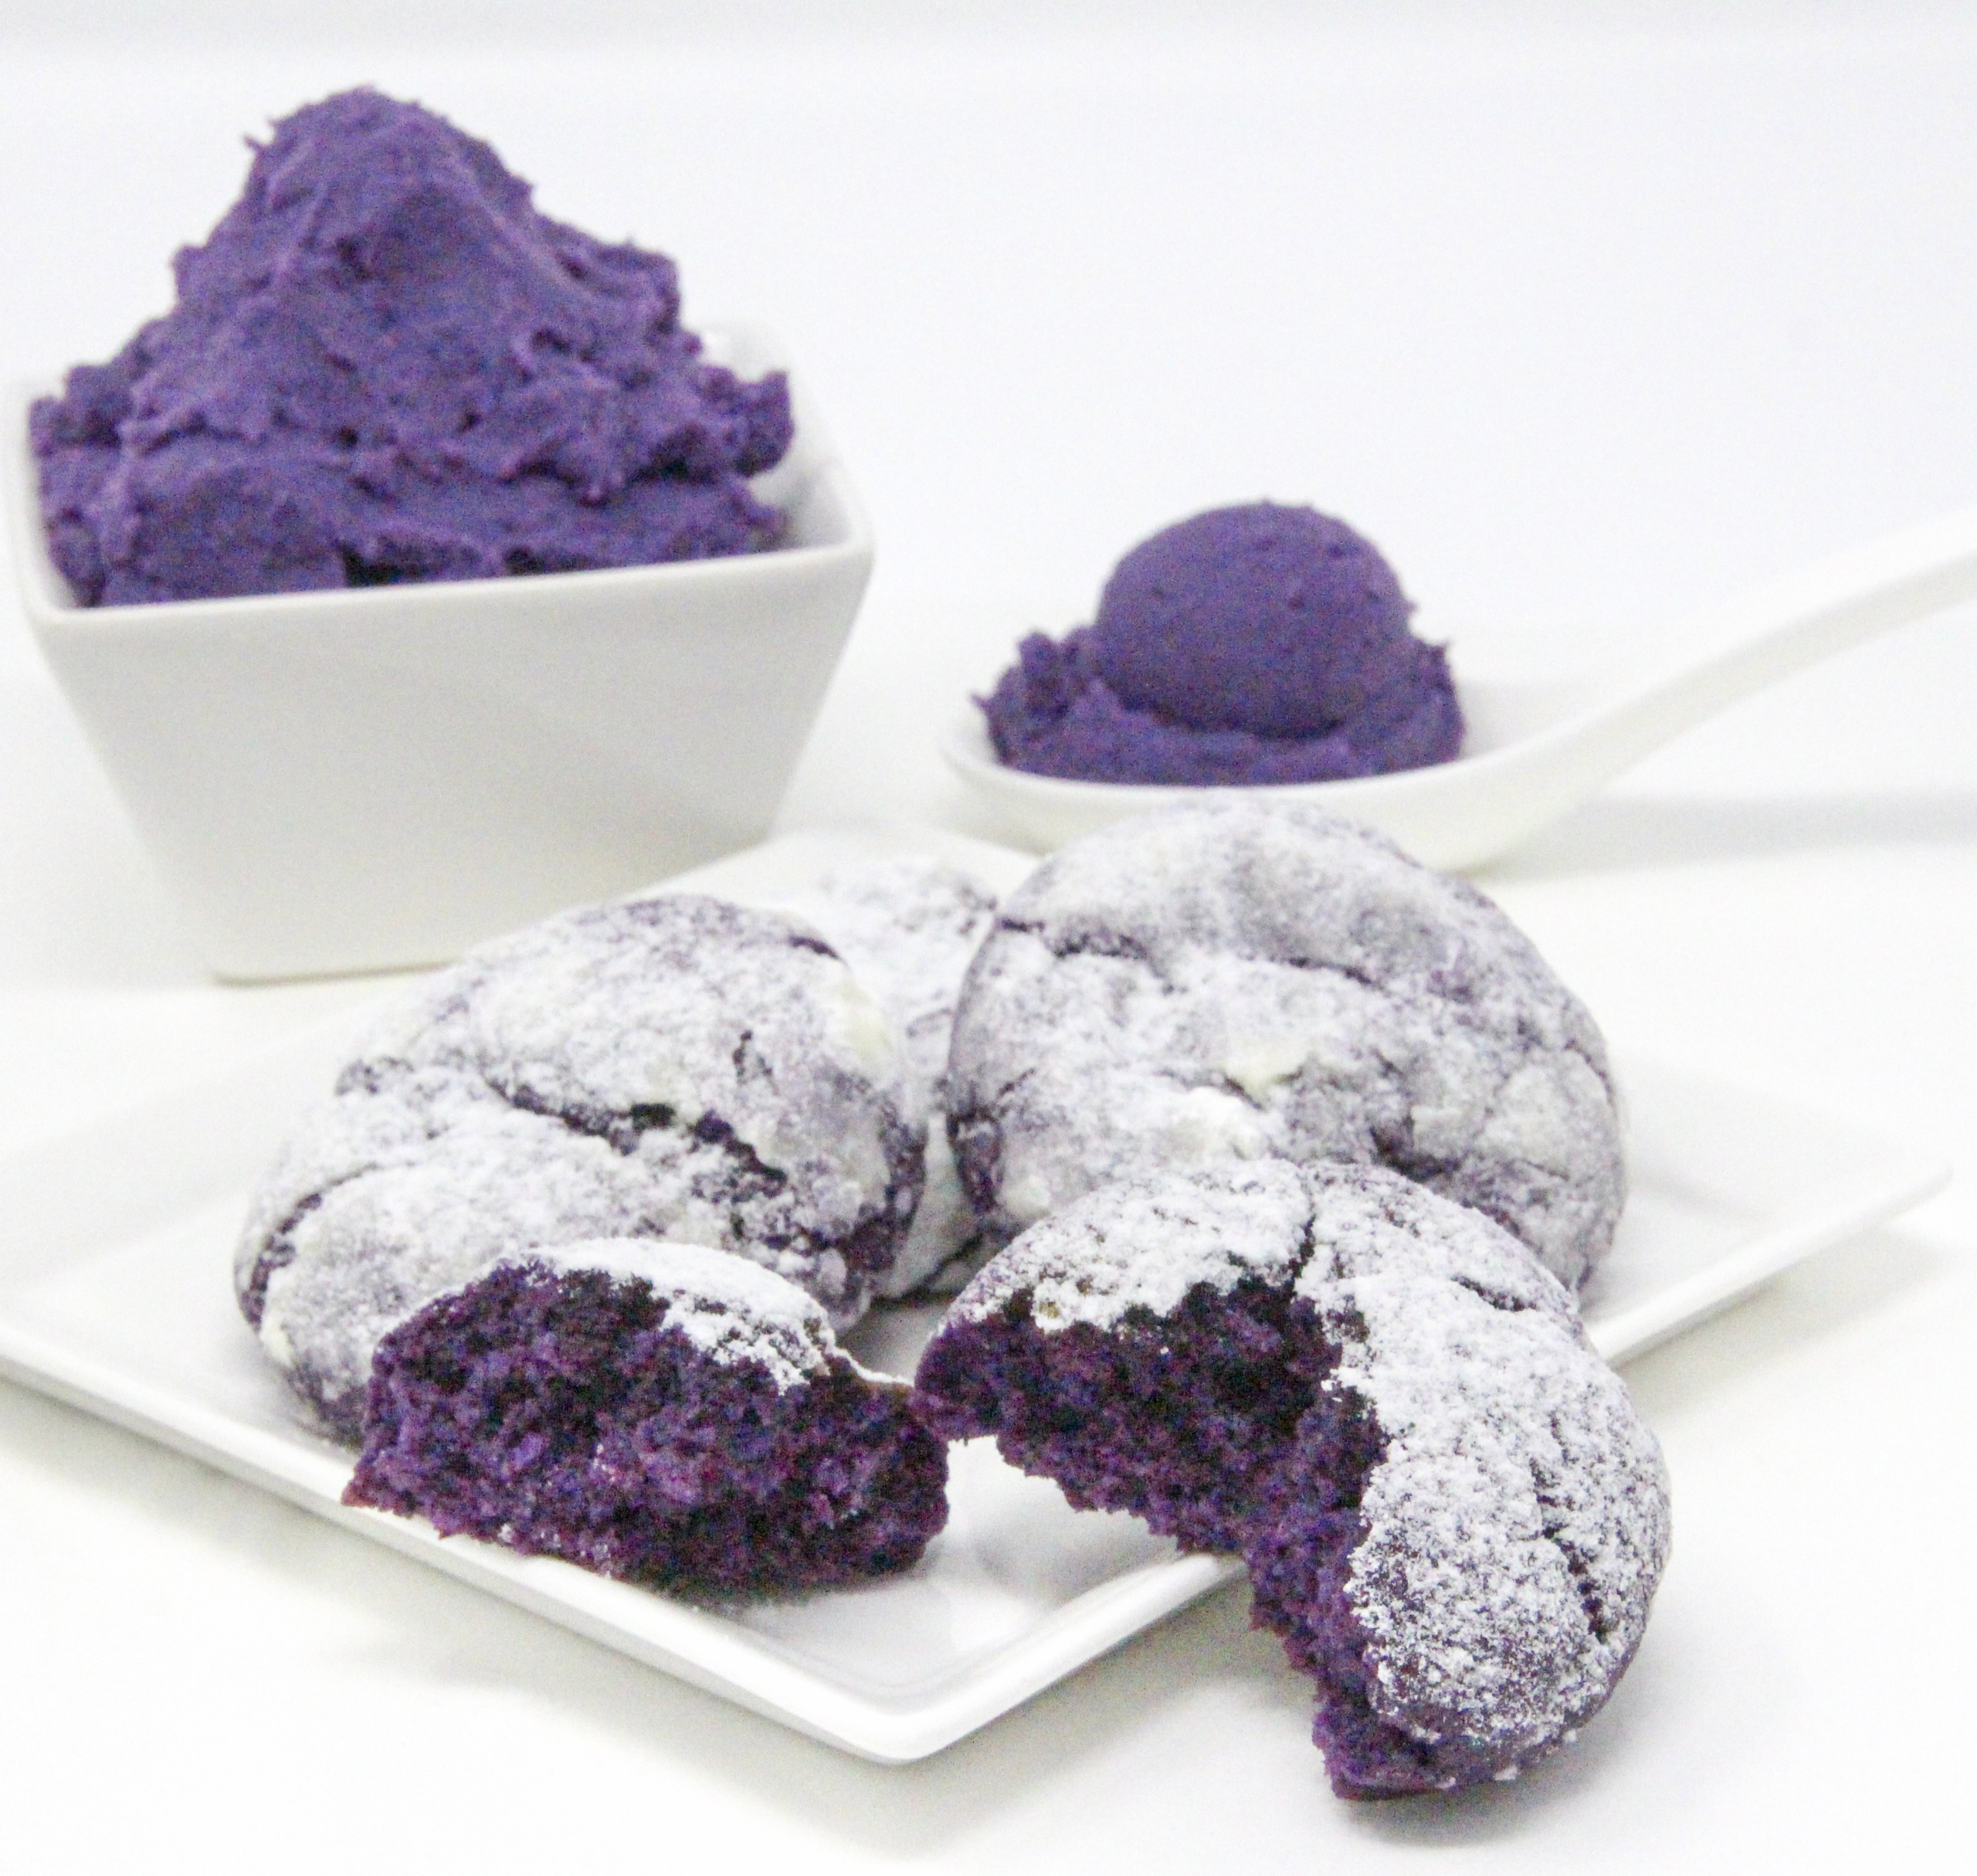 Traditional Filipino Ube Crinkles are delicious as they are unique and provide a welcome splash of color on any springtime cookie platter! Recipe shared with permission granted by Berkley Publishing, from cozy mystery ARSENIC AND ADOBO by Mia P. Manansala.